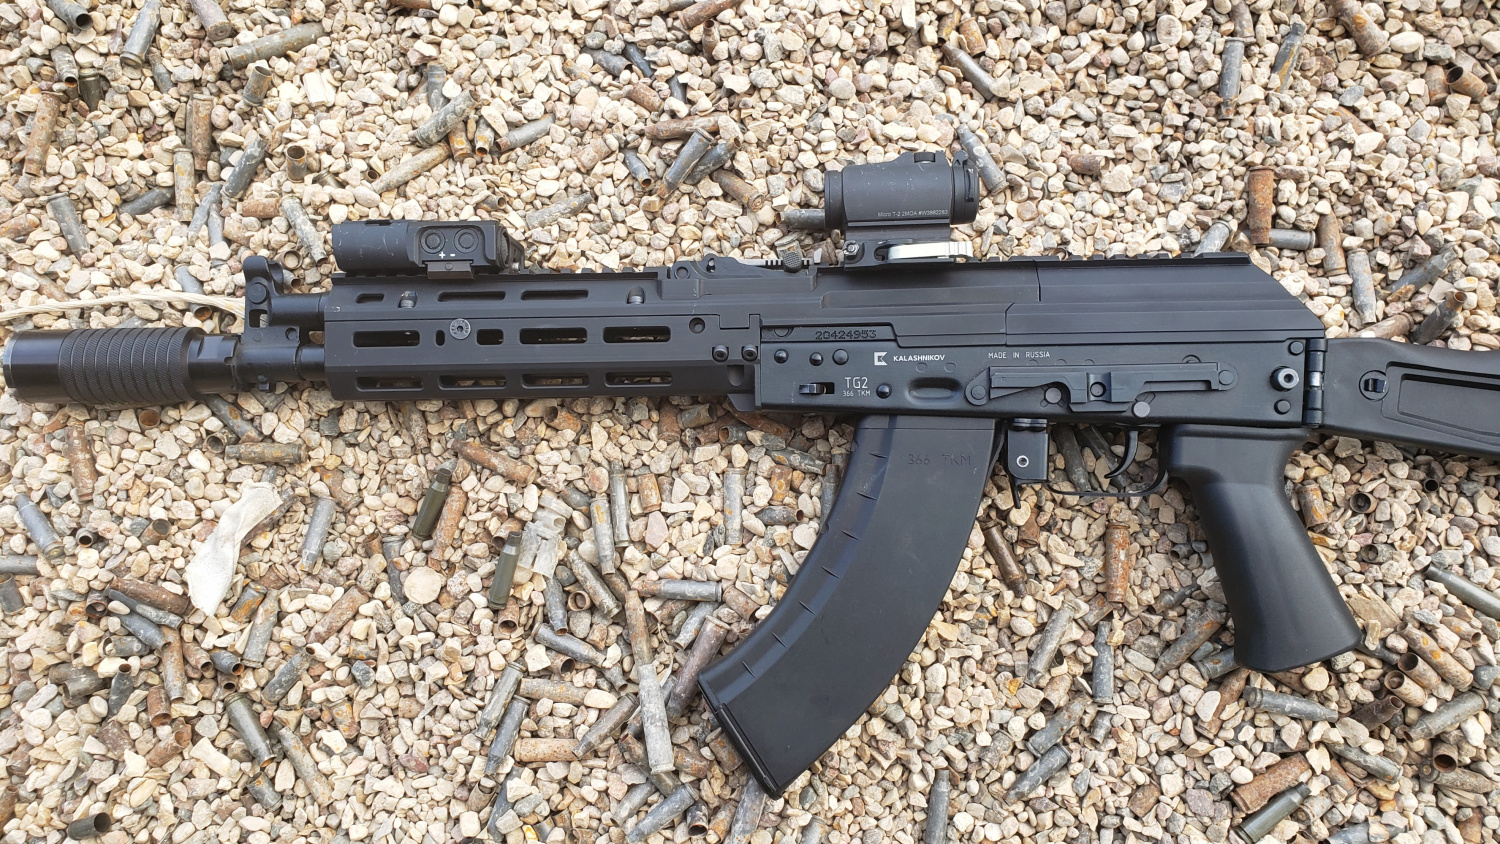 Author personal AK carbine with Sureshot Armament MK3 Chassis.